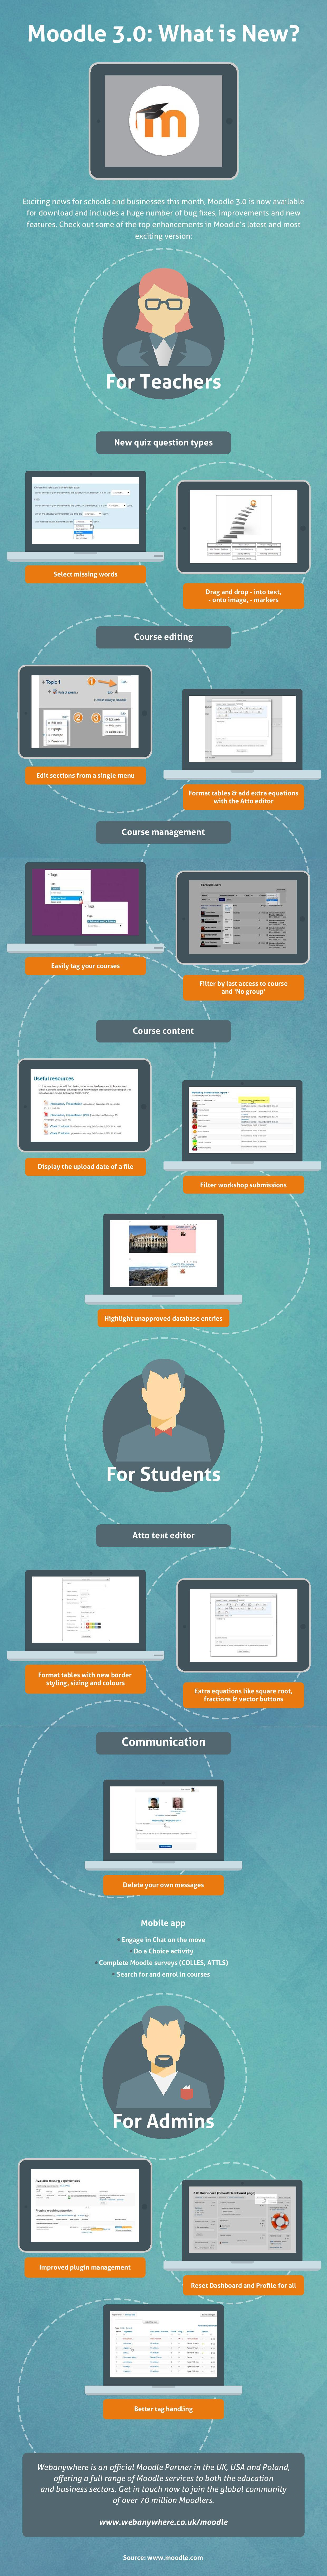 Infographic: Moodle 3 What is new infographic